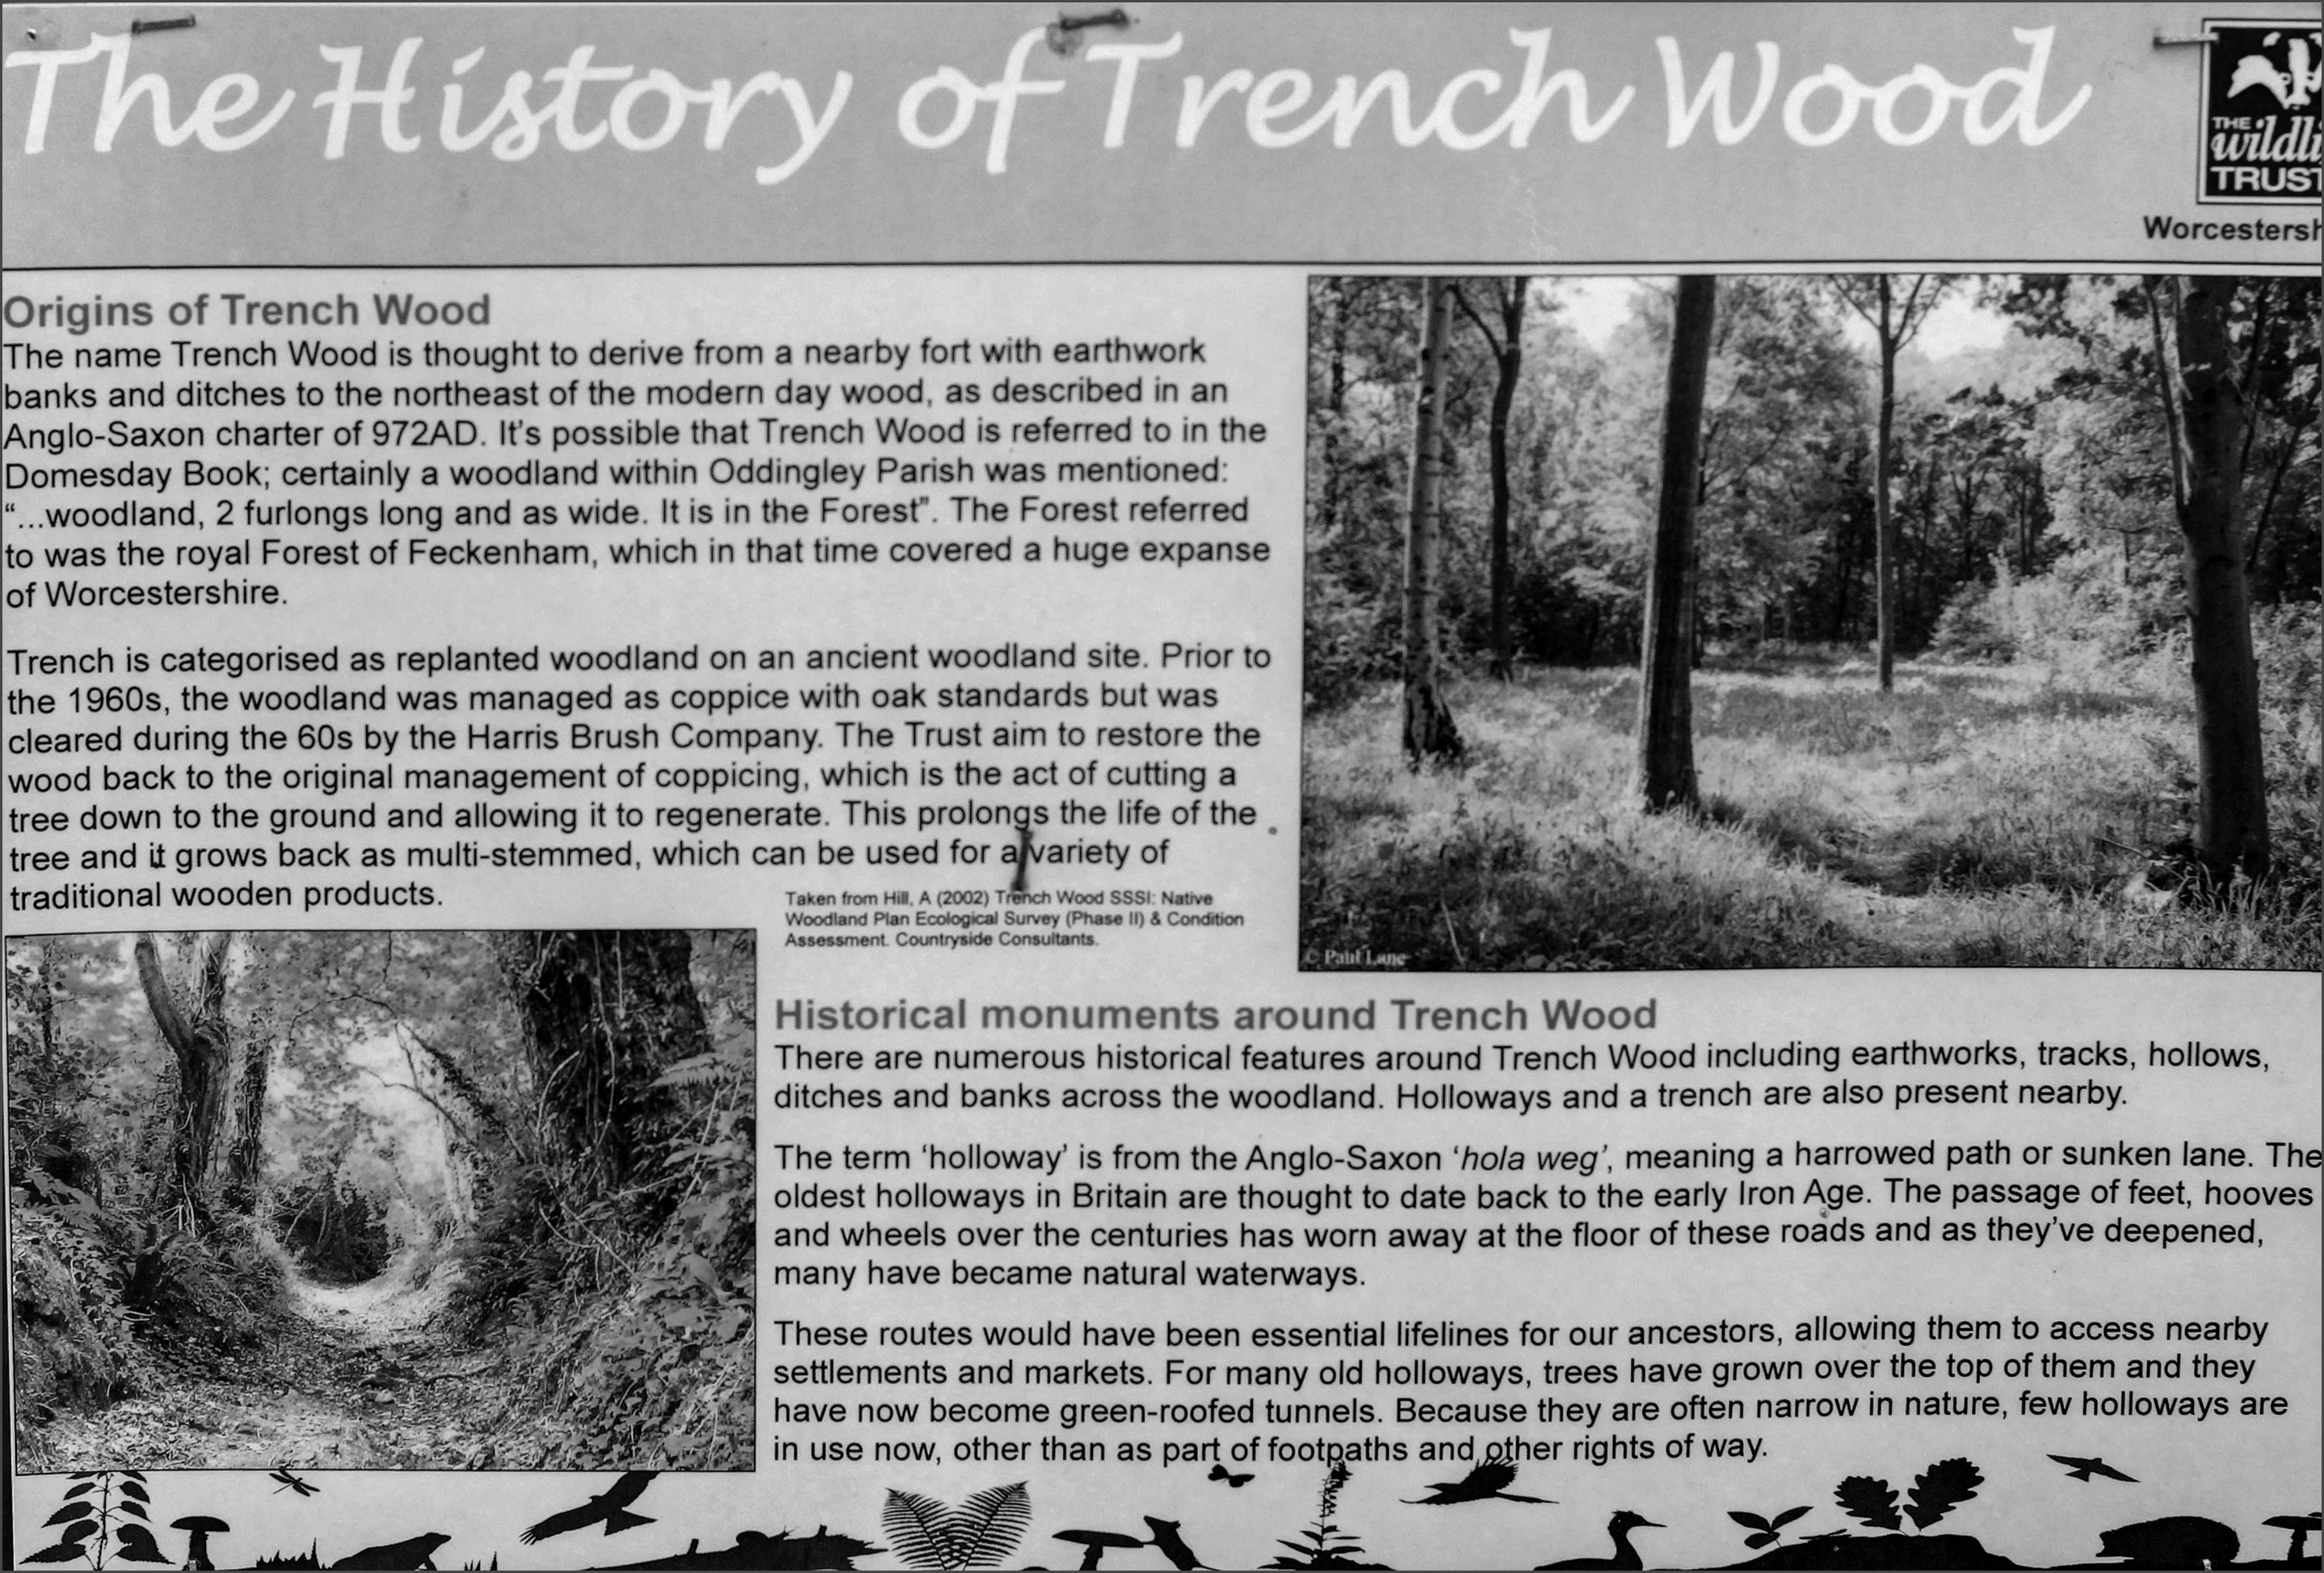 Potted History of Trench Wood